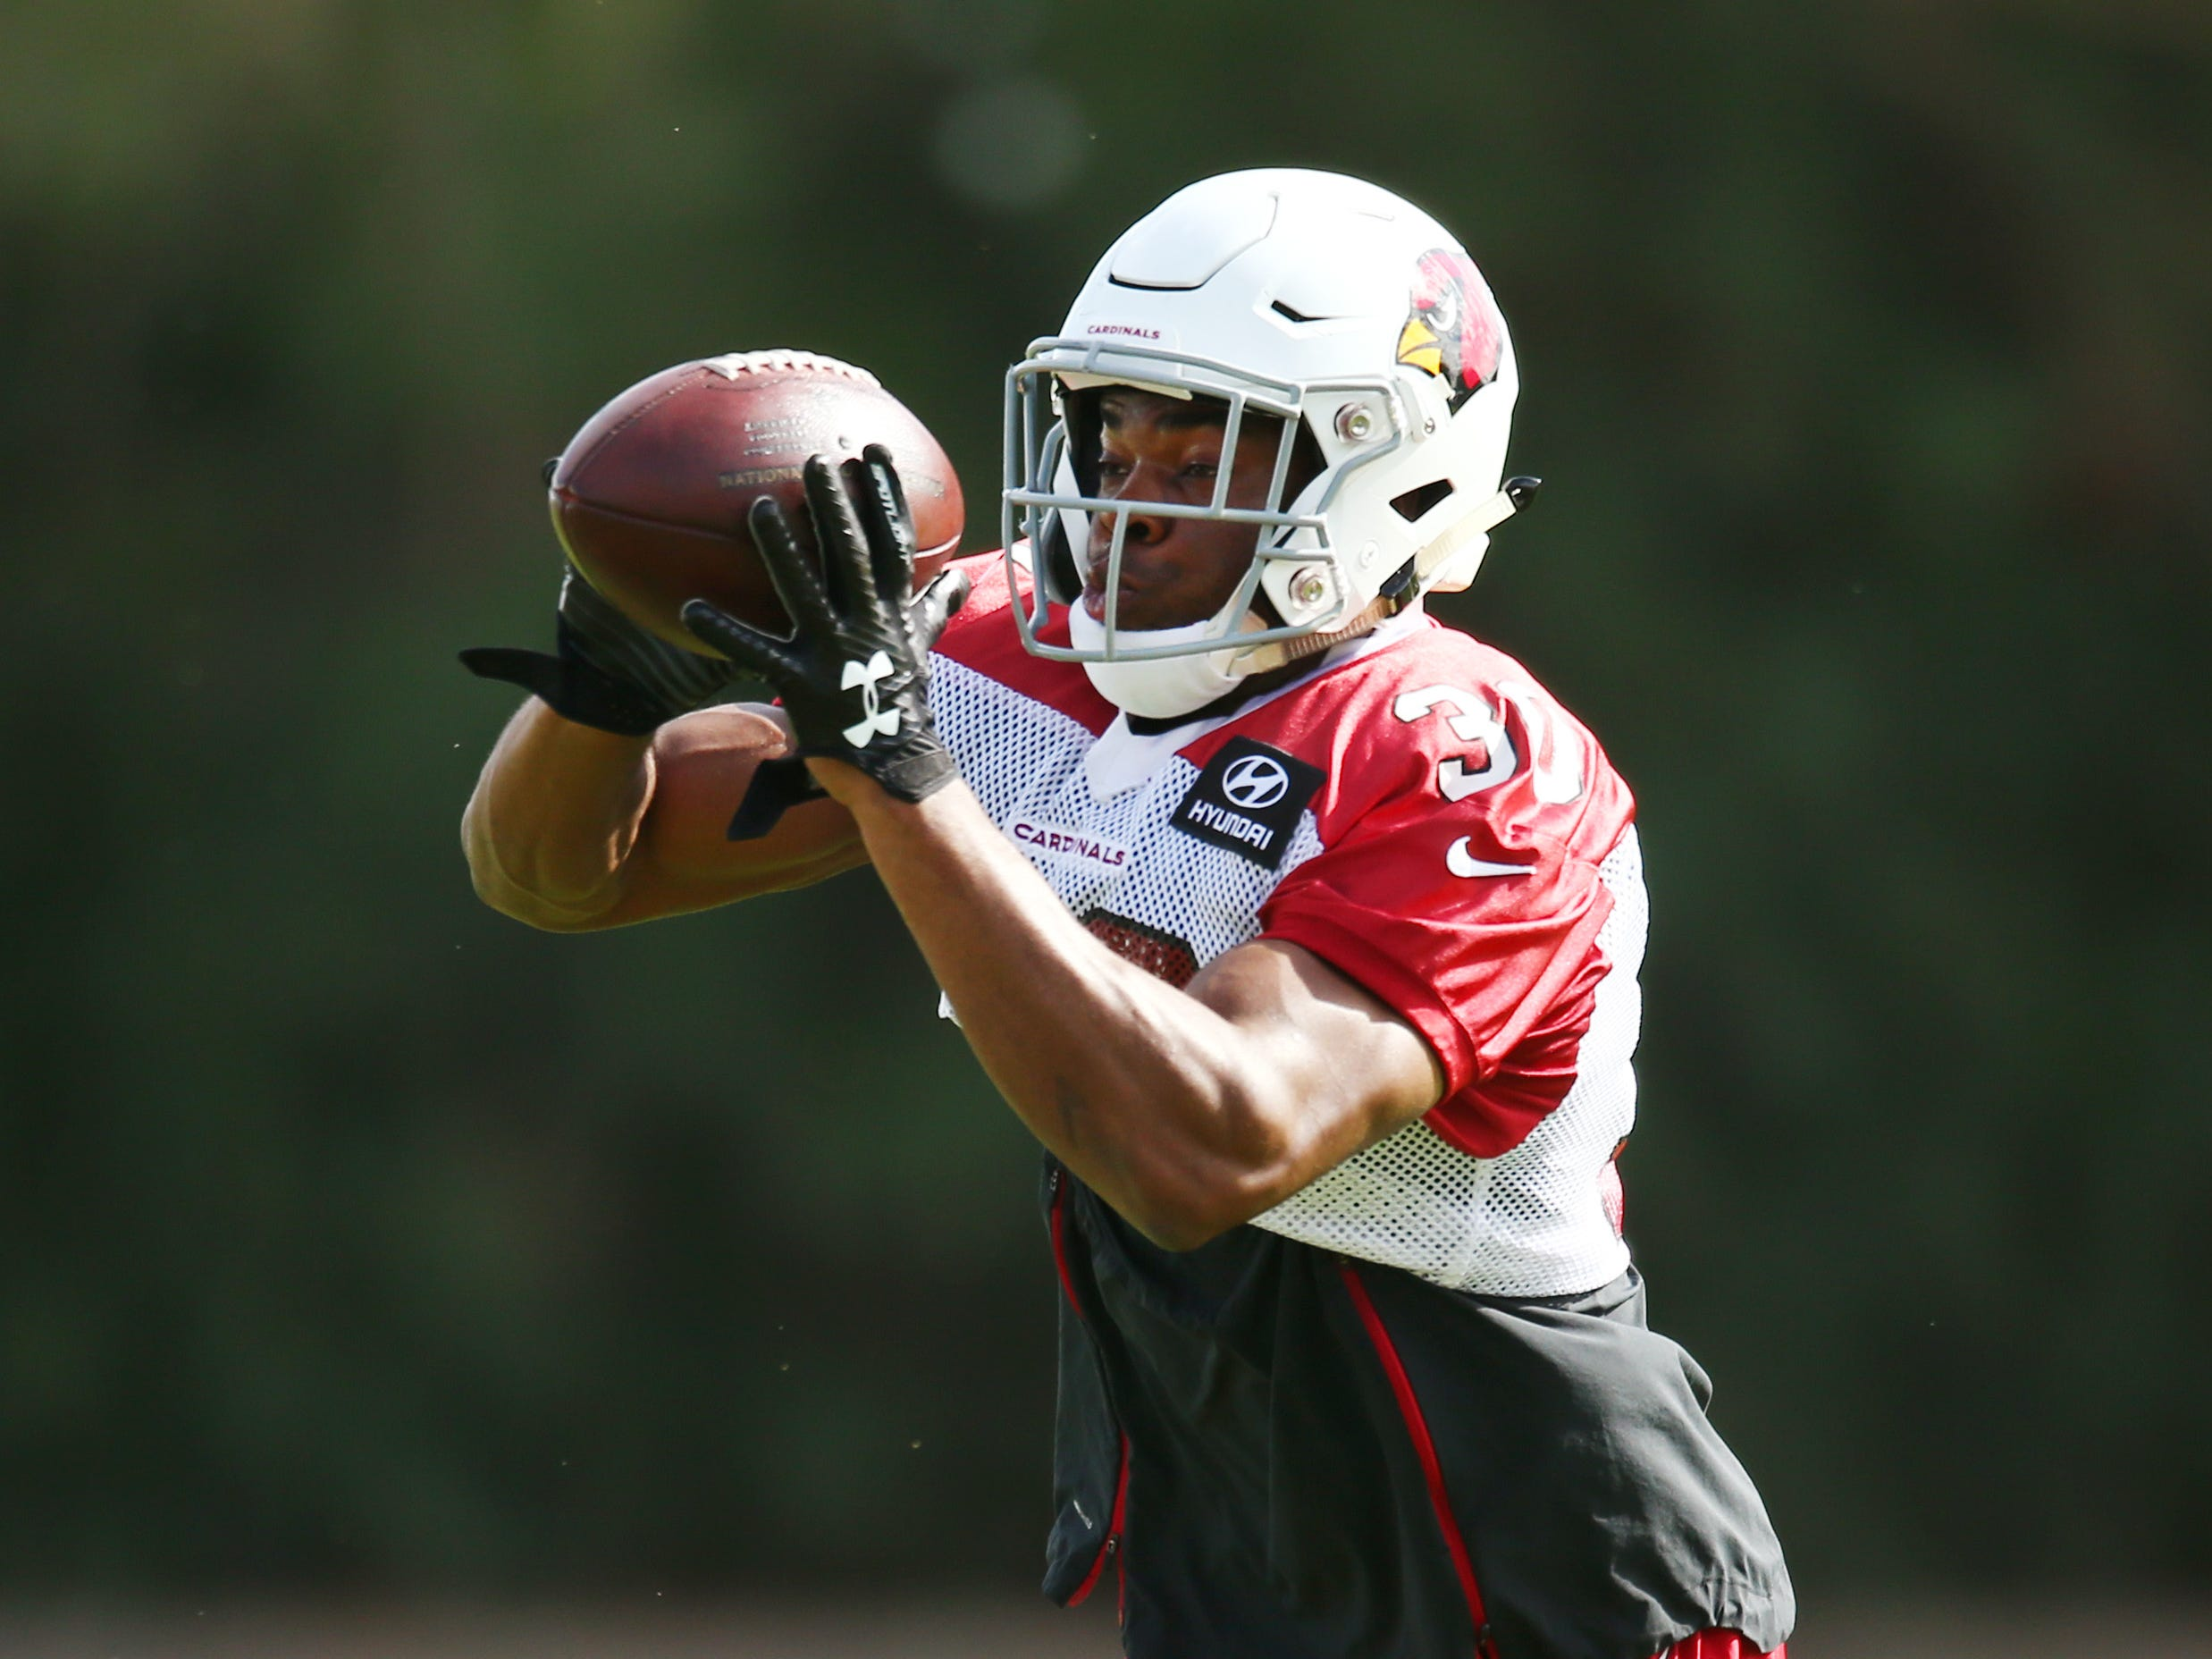 Arizona safety Rudy Ford (30) on Oct. 22 at the Cardinals Training Facility.